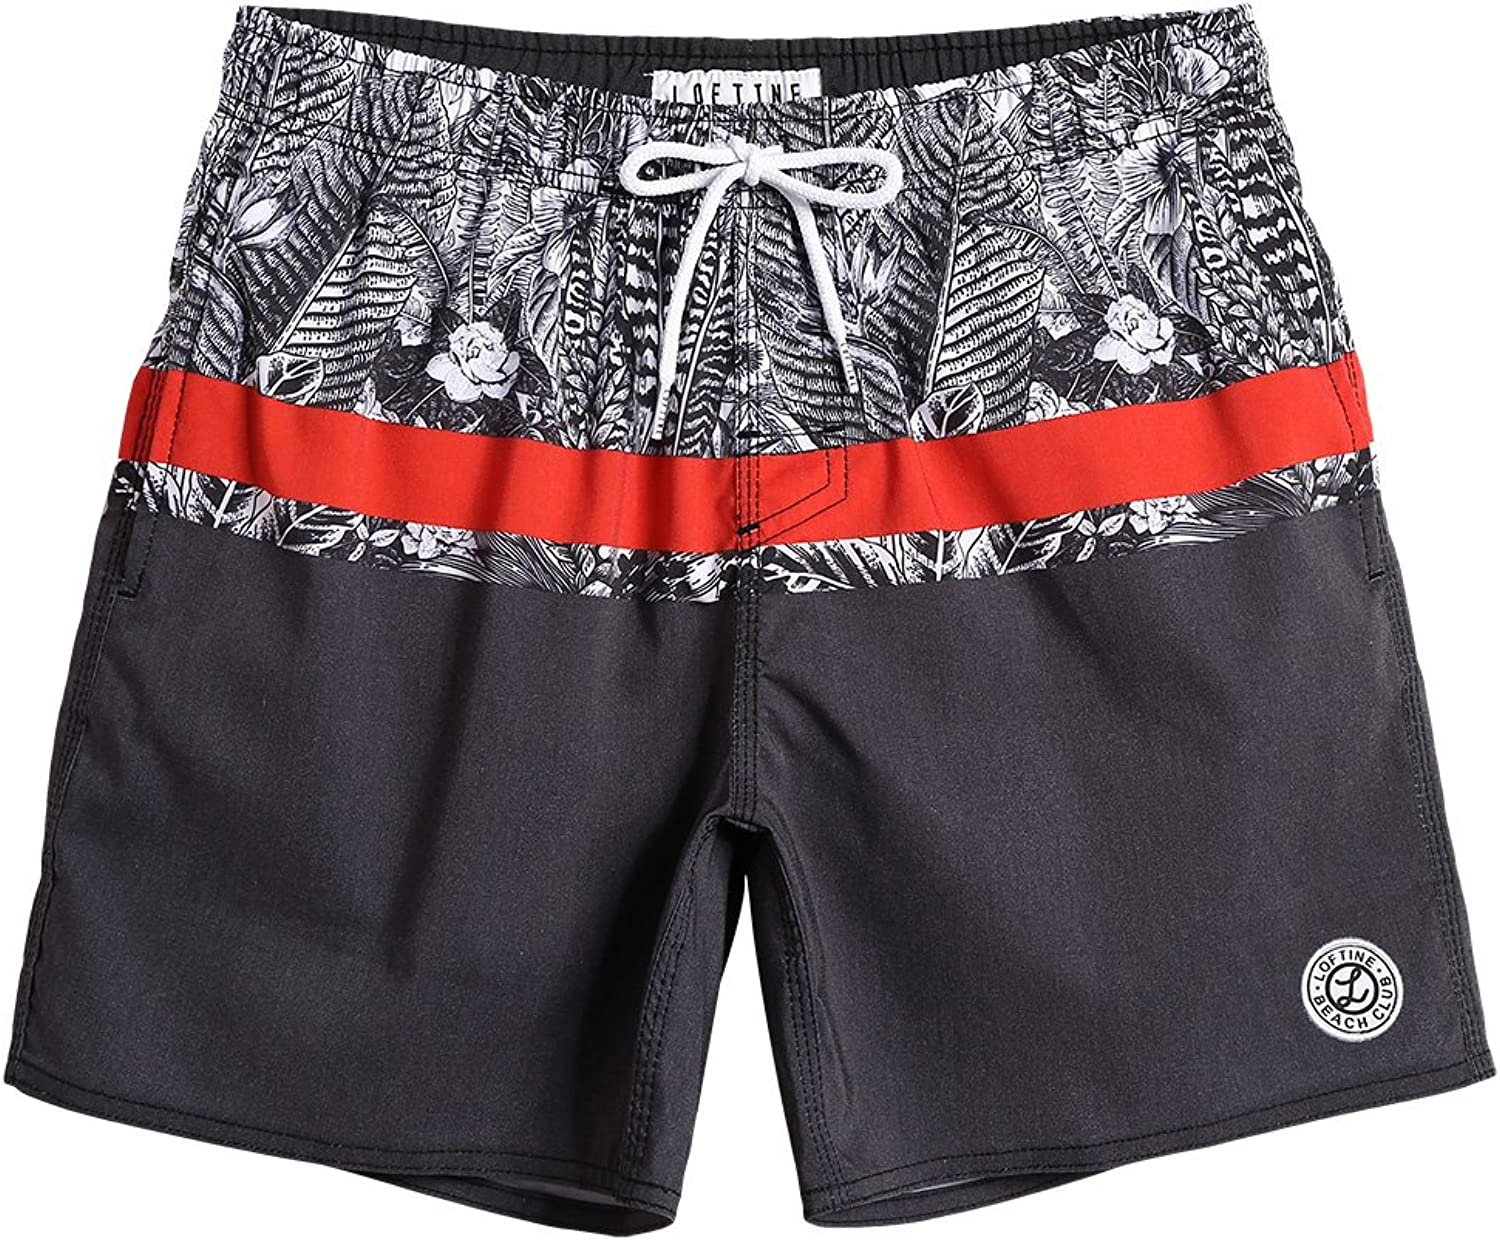 Loftine Mens Tropical Swim Trunks Stretchable Quick Dry Beach Shorts Watersports